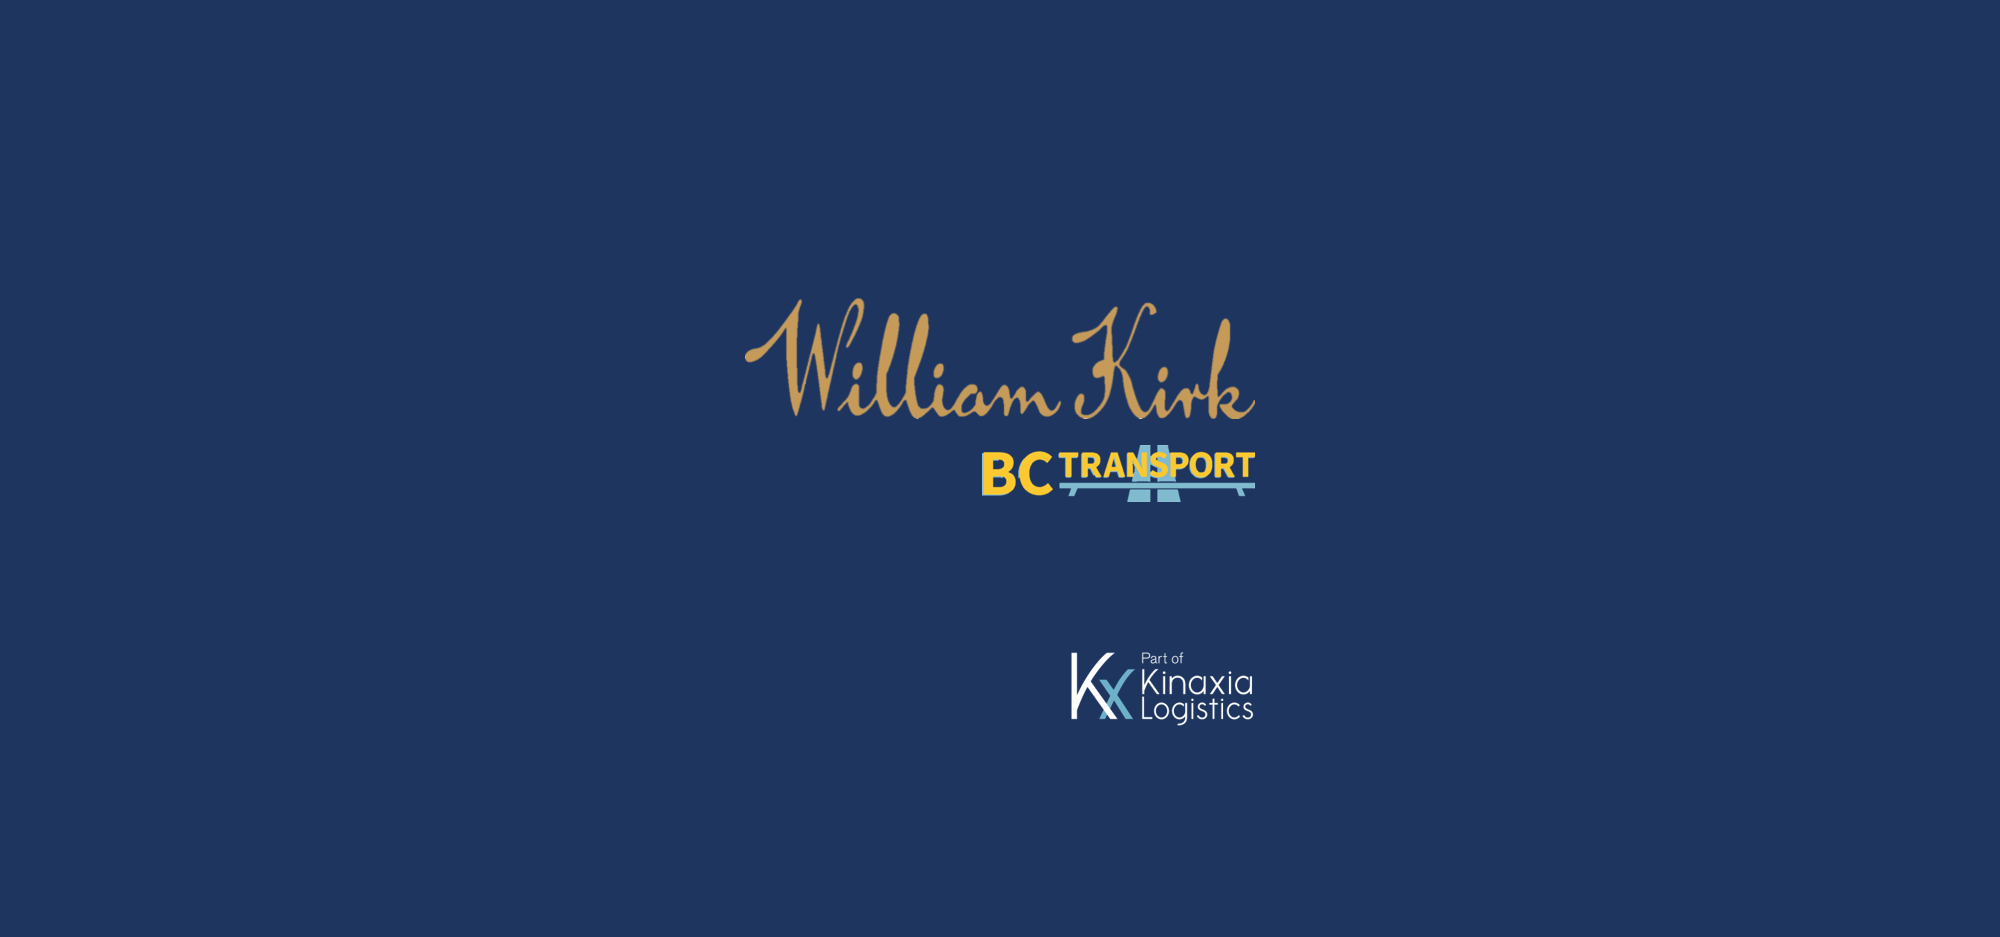 Merger of BC Transport and William Kirk